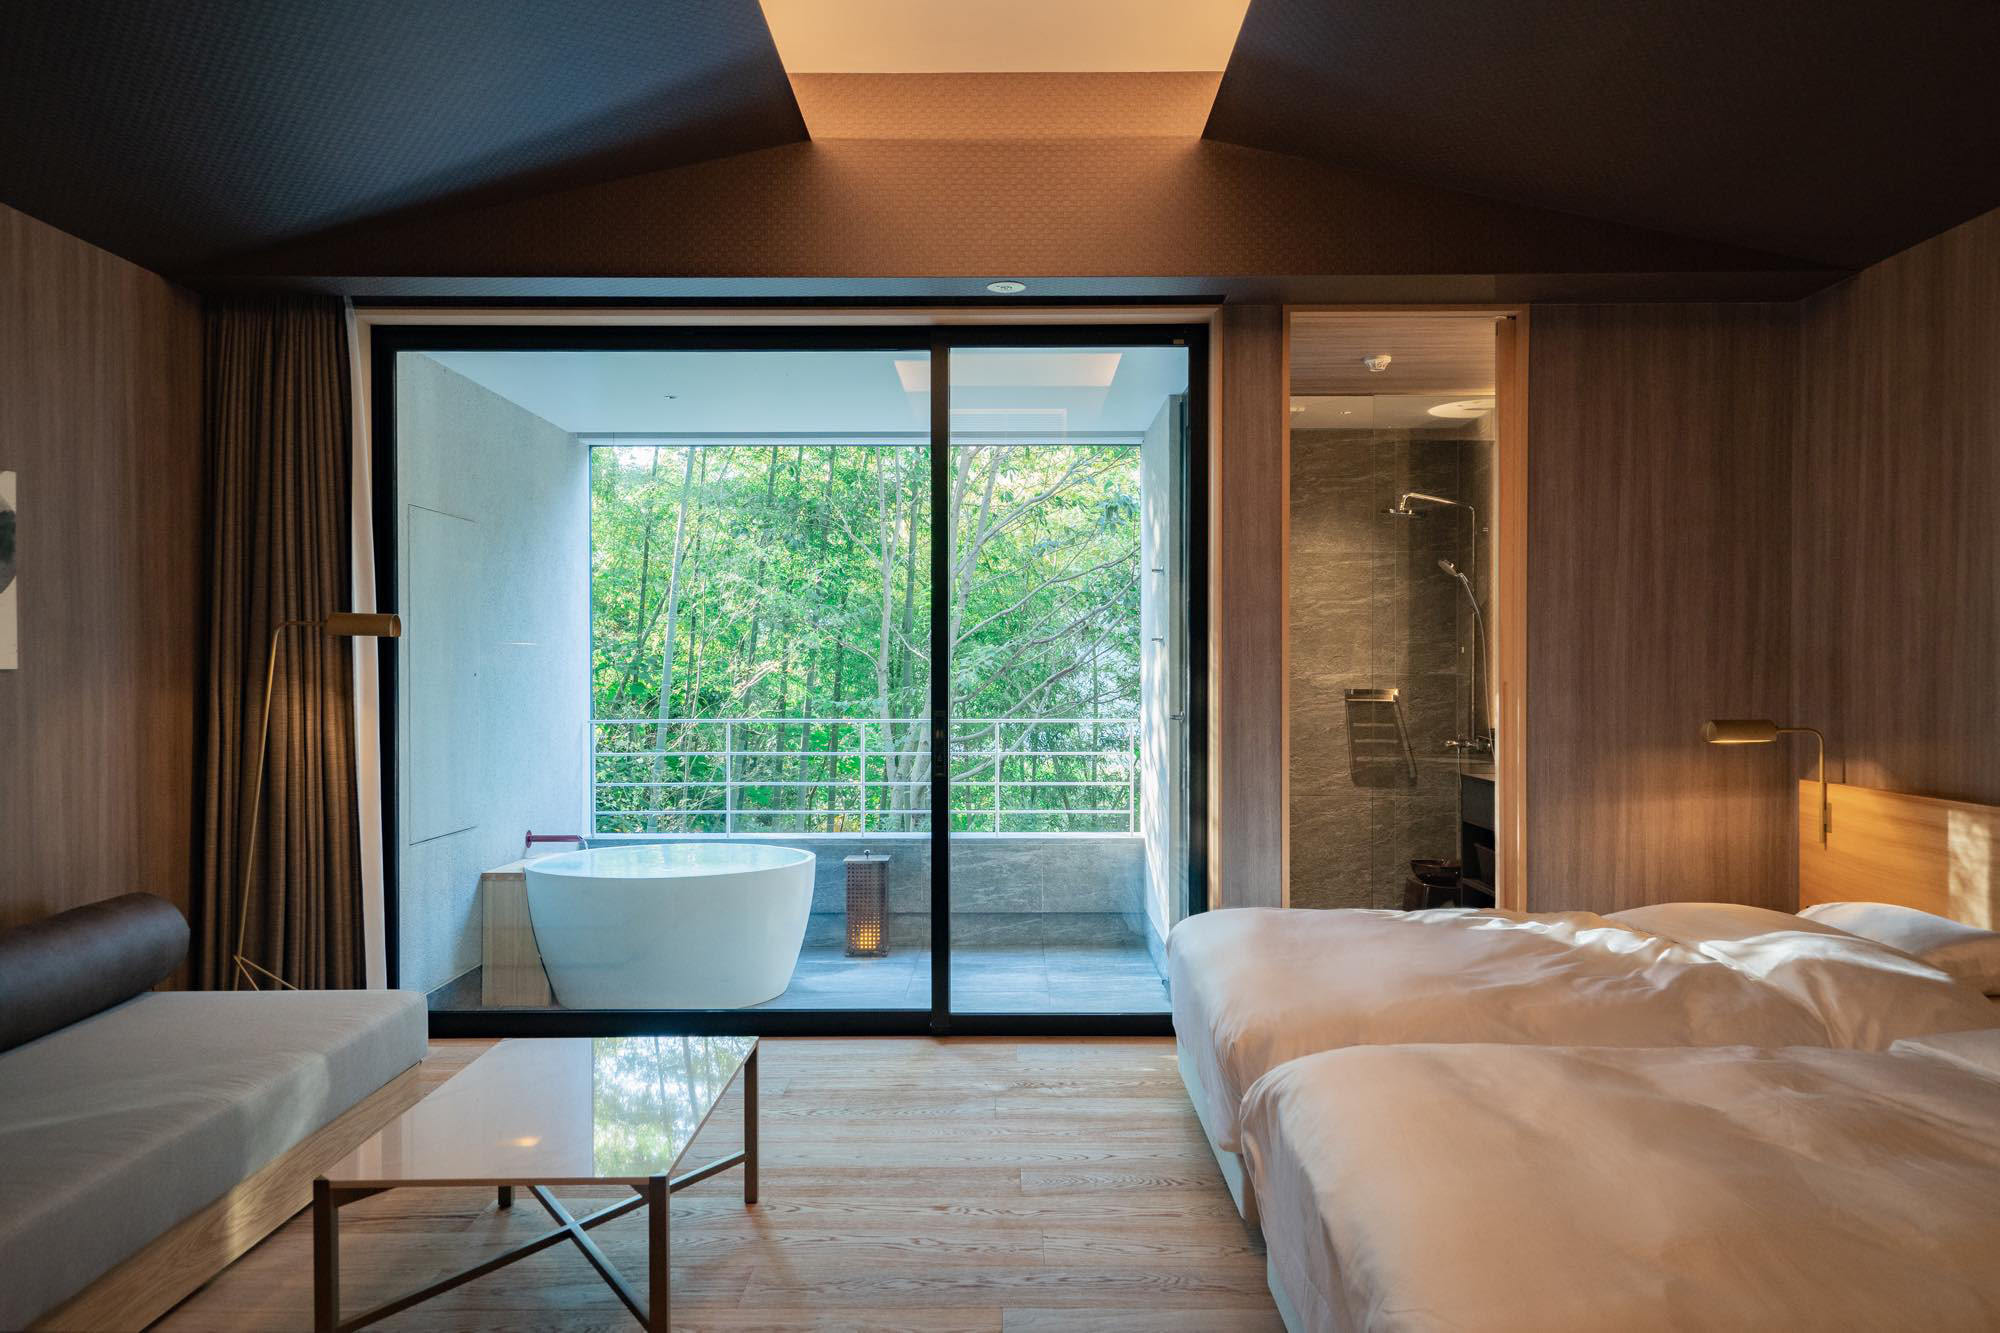 The guests rooms are simply furnished using plenty of wood.